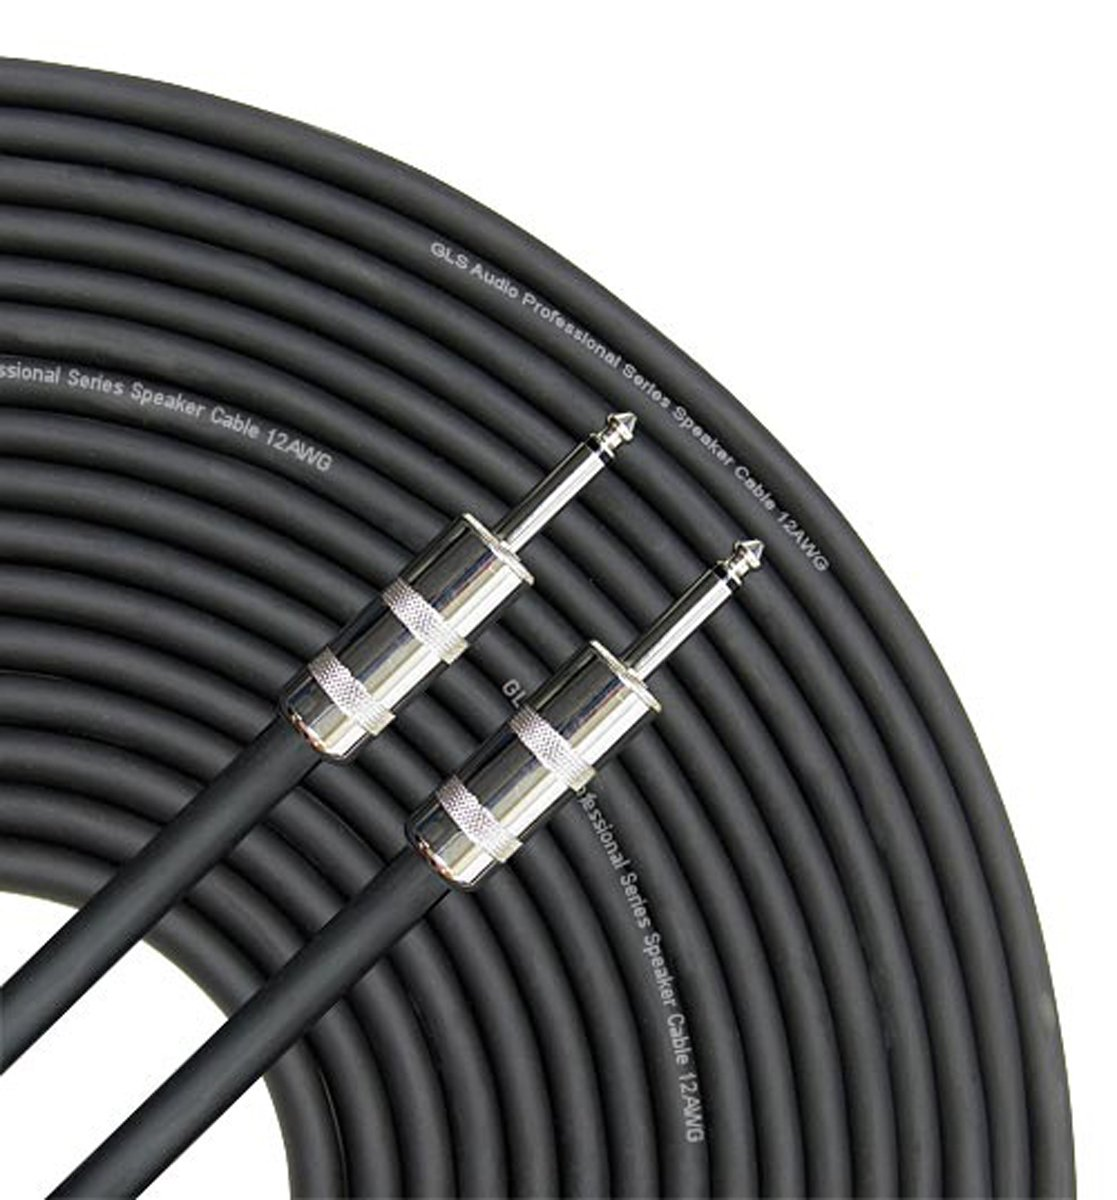 GLS Audio 100 feet Speaker Cable 12AWG Patch Cords - 100 ft 1/4'' to 1/4'' Professional Speaker Cables Black 12 Gauge Wire - Pro 100' Phono 6.3mm Cord 12G - Single by GLS Audio